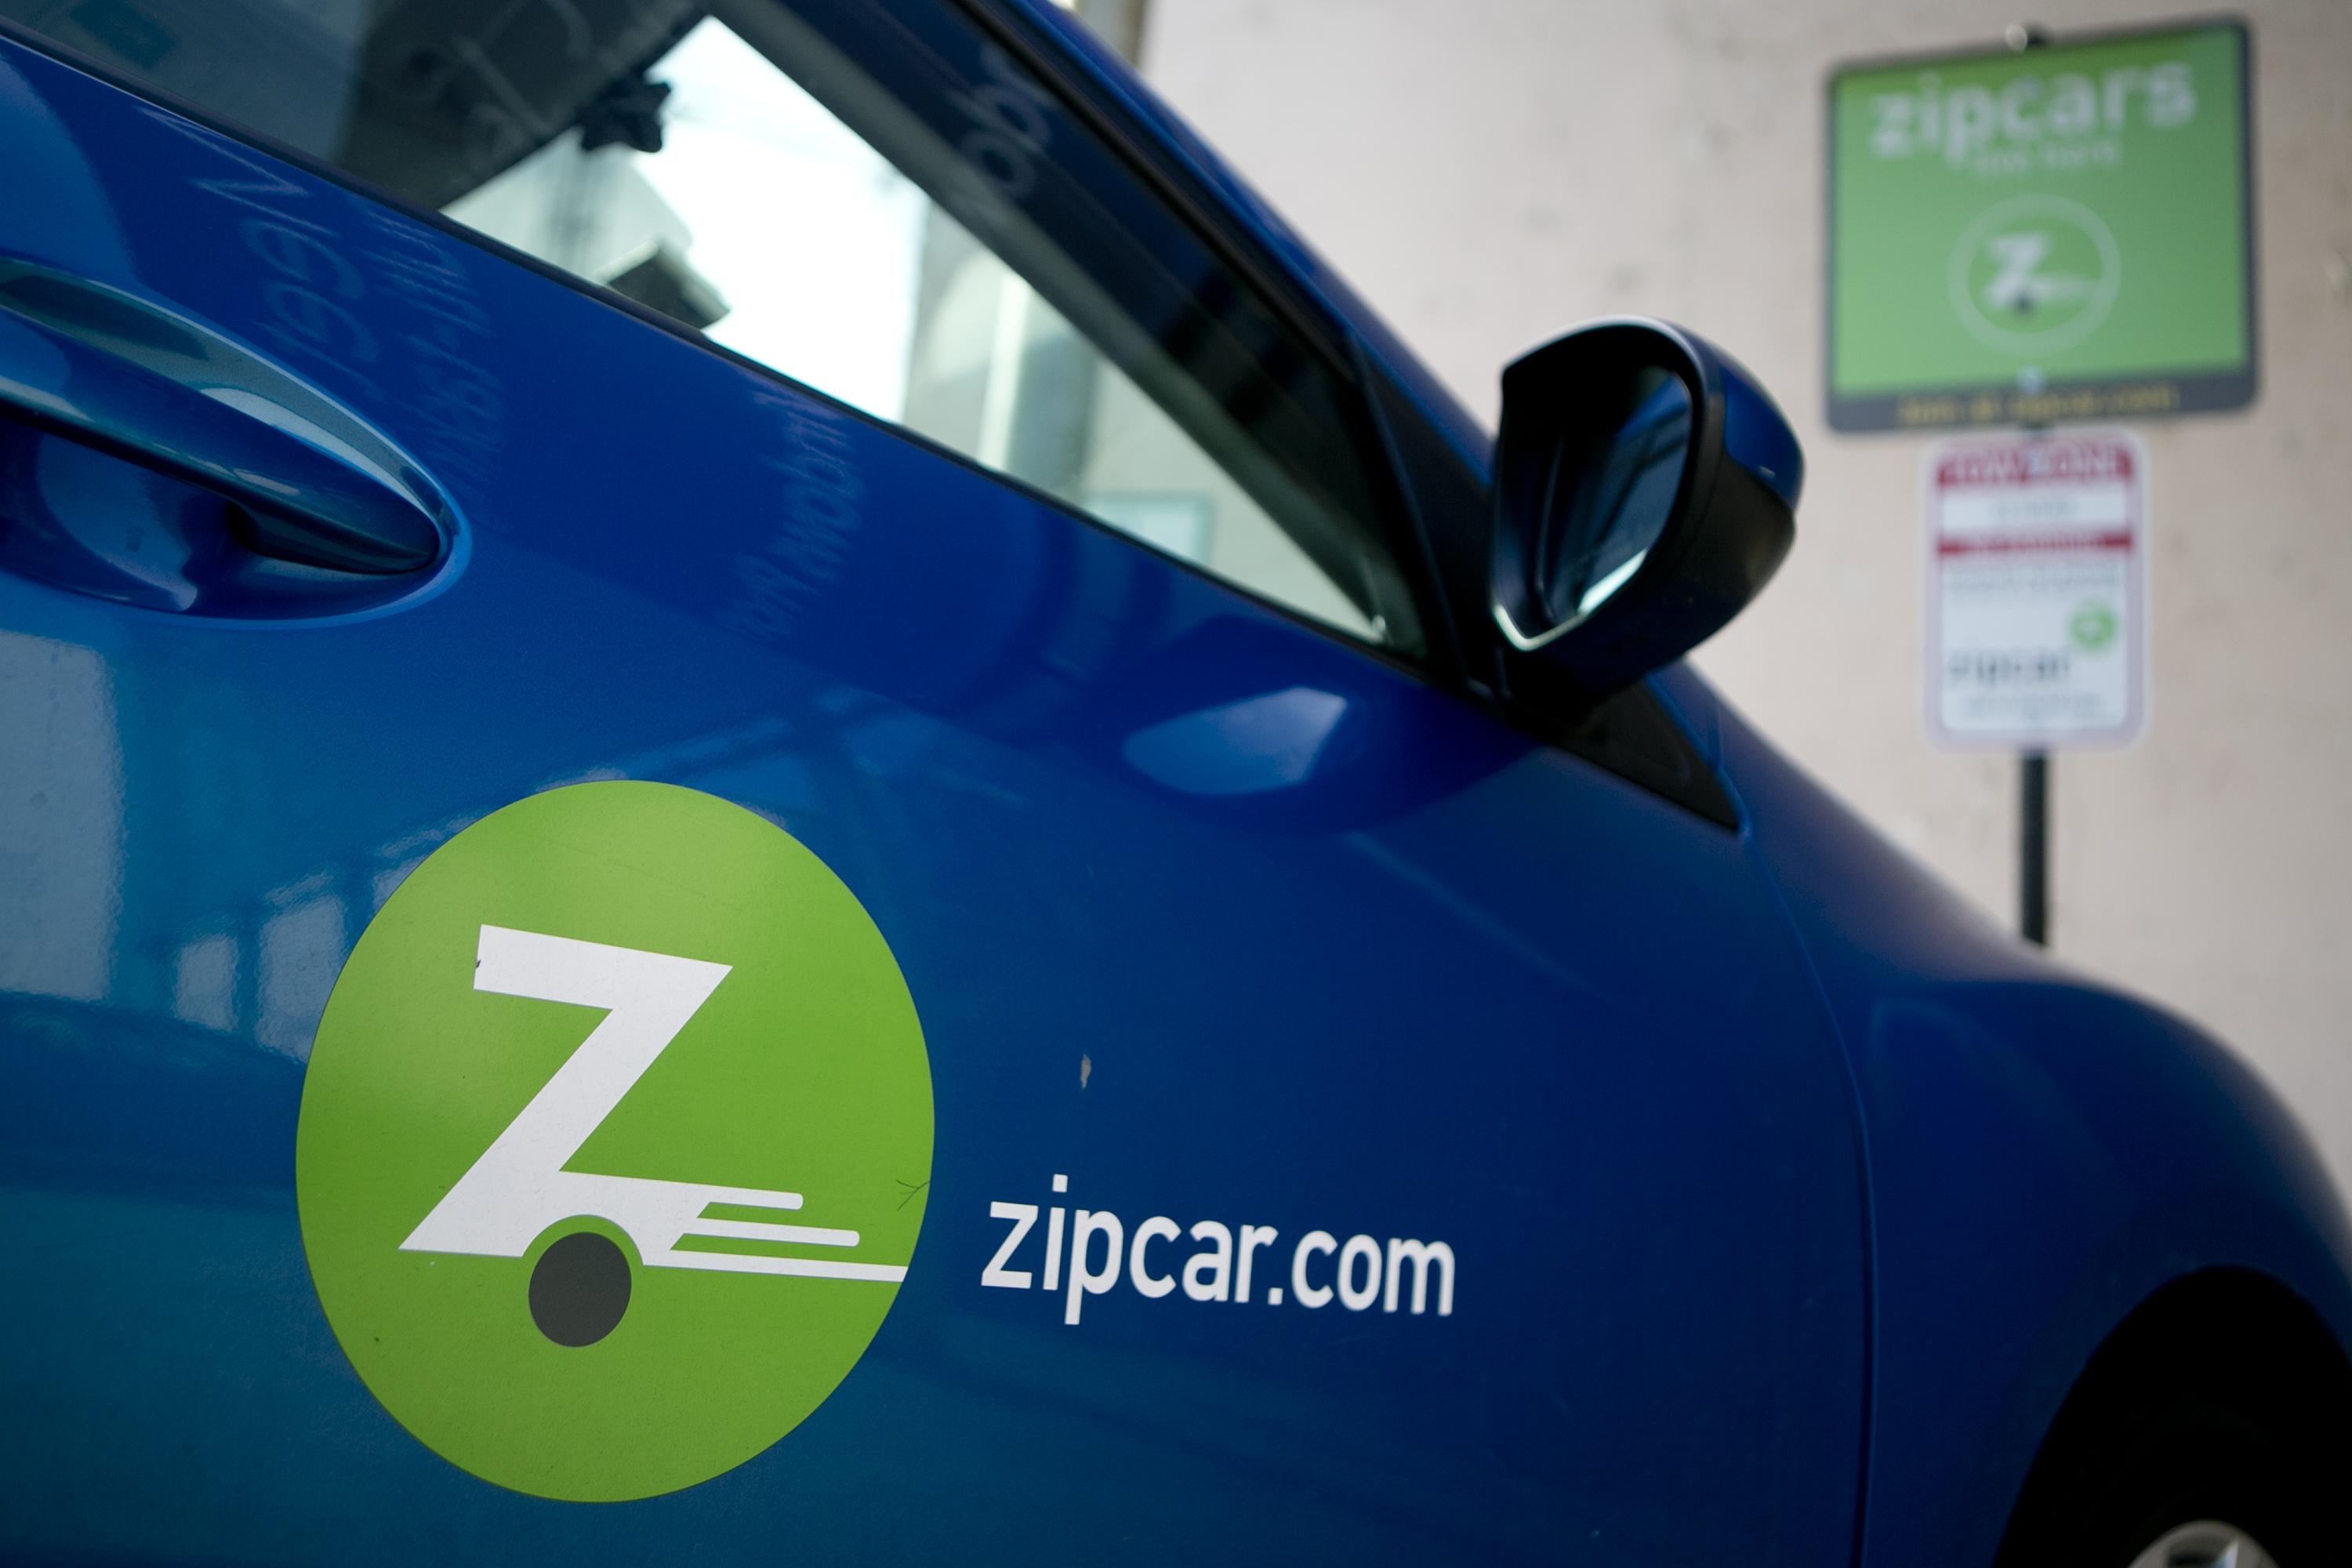 A Mazda Motor Corp. Zipcar Inc. vehicle sits parked in one of the company's spaces in Washington, D.C., U.S., on Wednesday, Jan. 2, 2013.